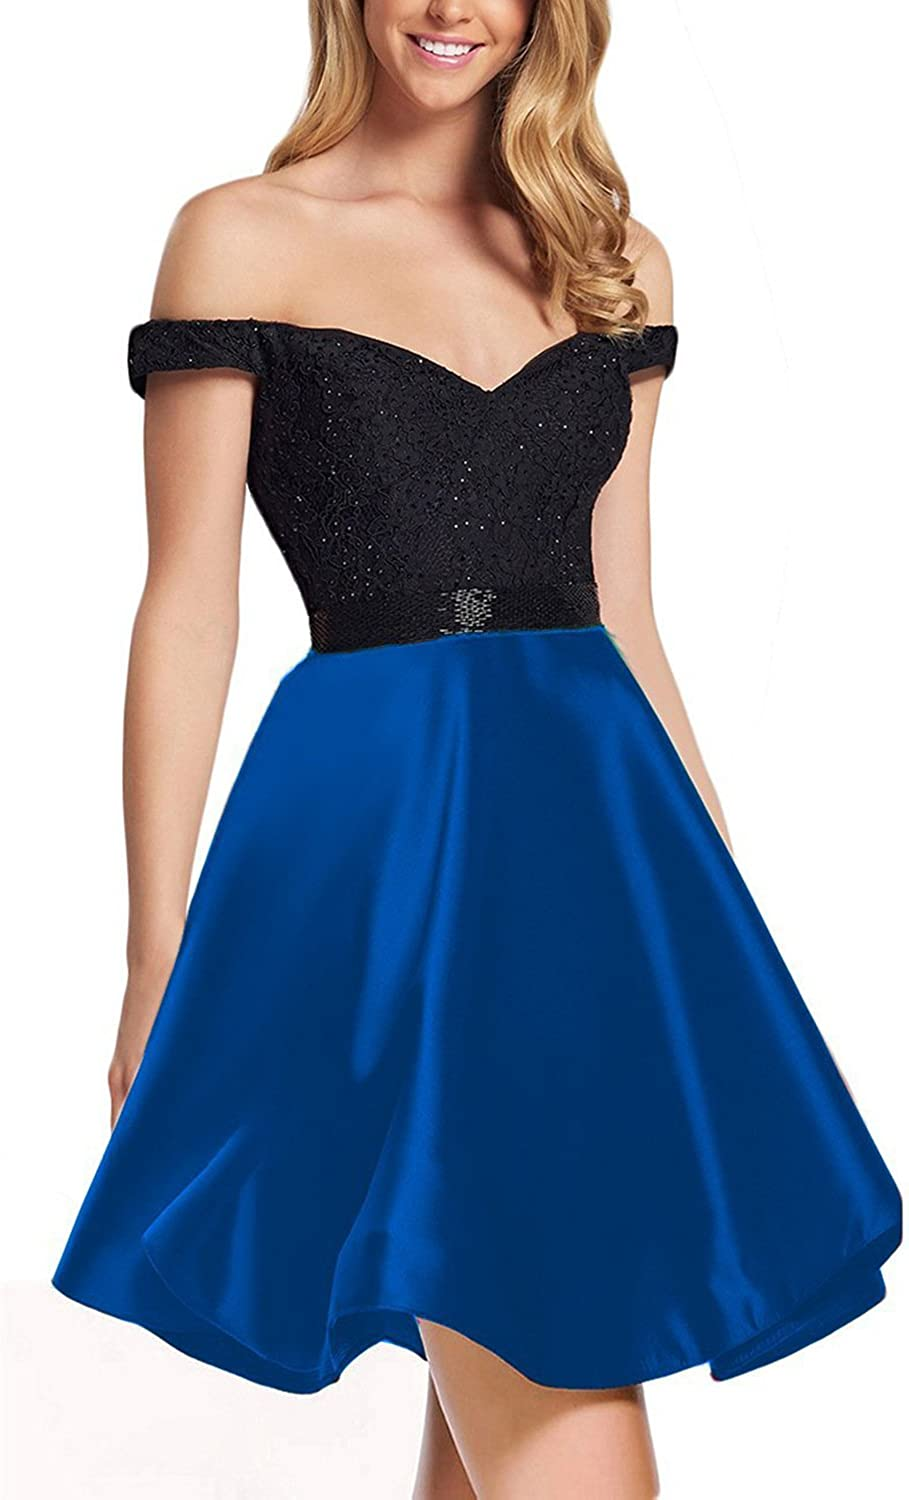 JoyVany Women Off Shoulder Homecoming Dresses Short 2018 Prom Gowns JH025